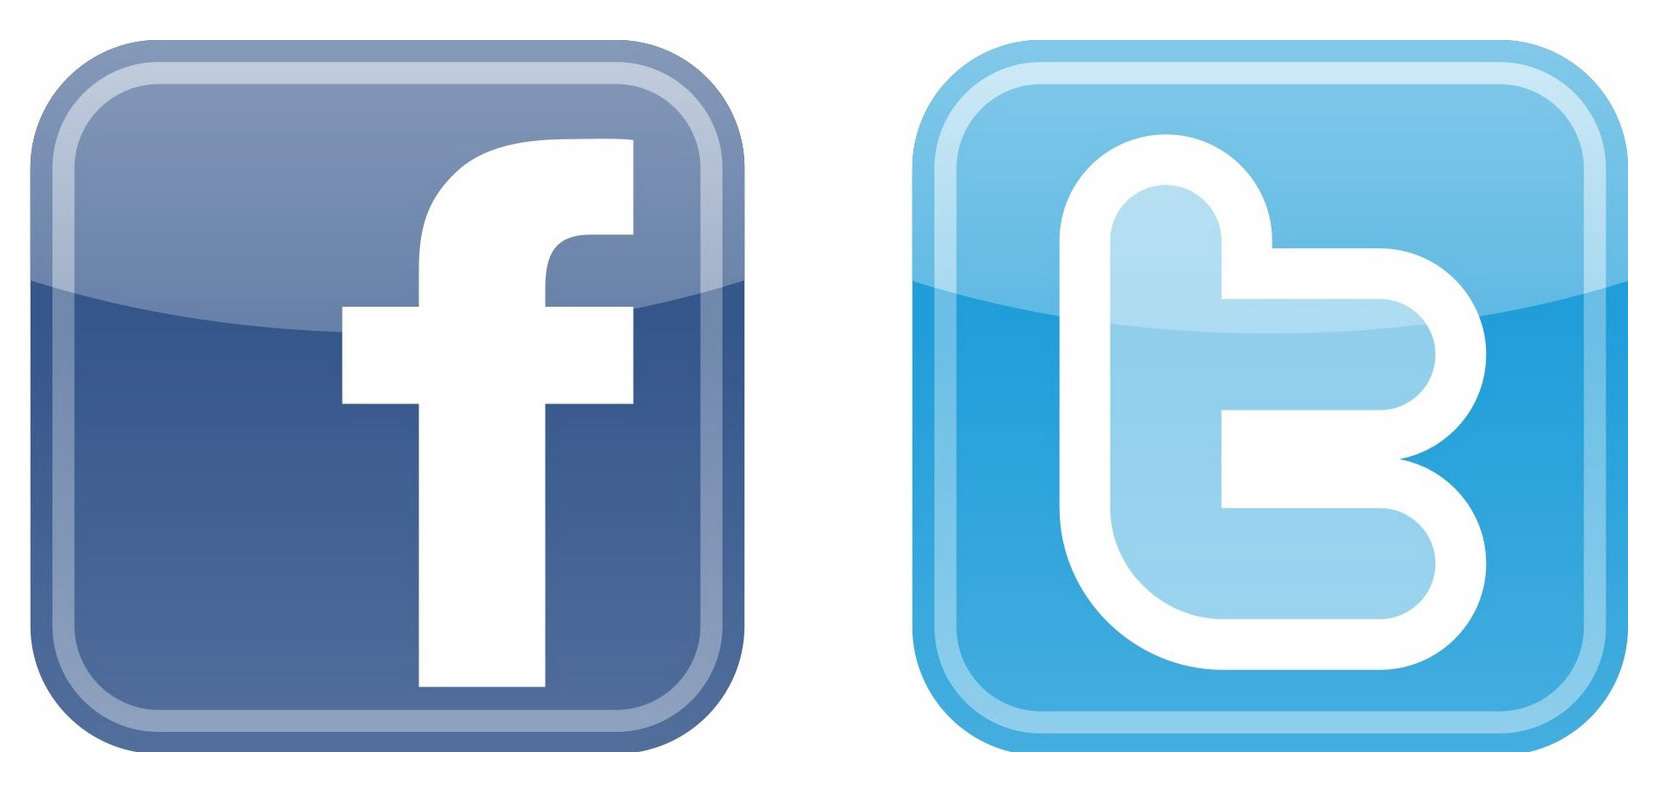 official facebook clipart png 20 free Cliparts | Download ...